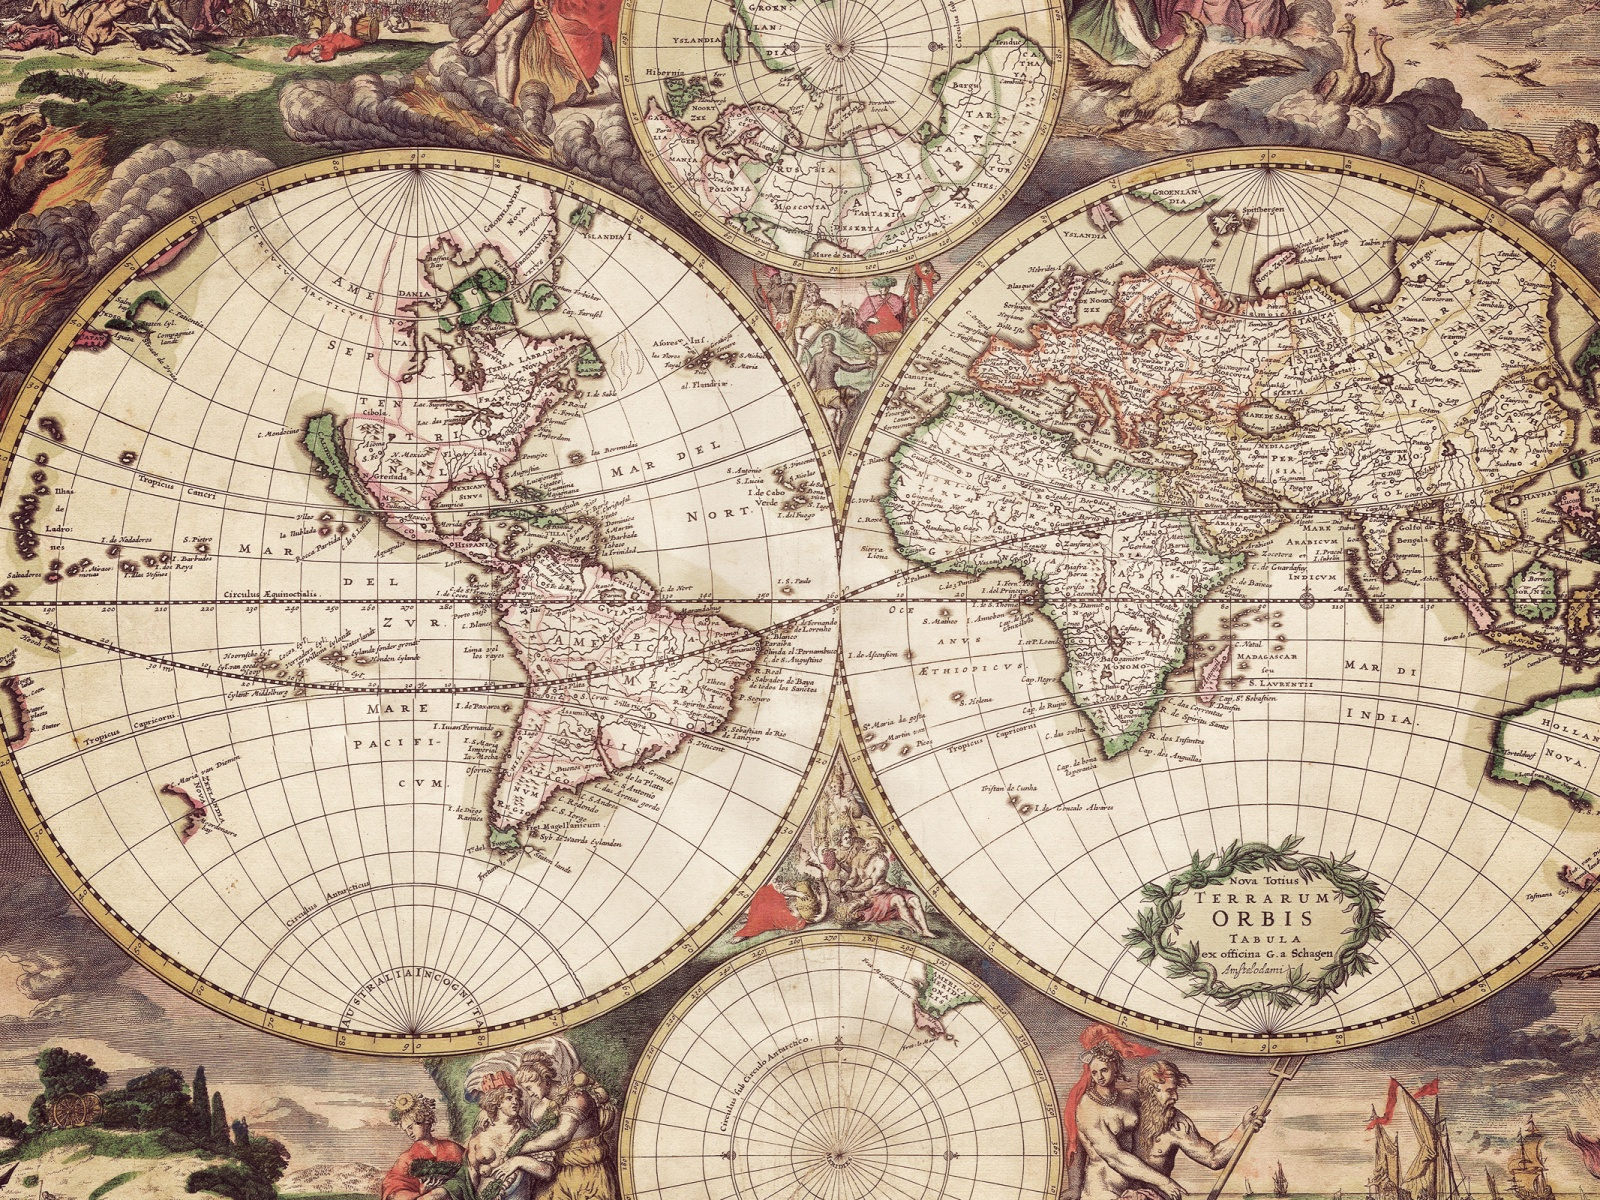 Free Download World Map With Engravings Desktop Wallpaper